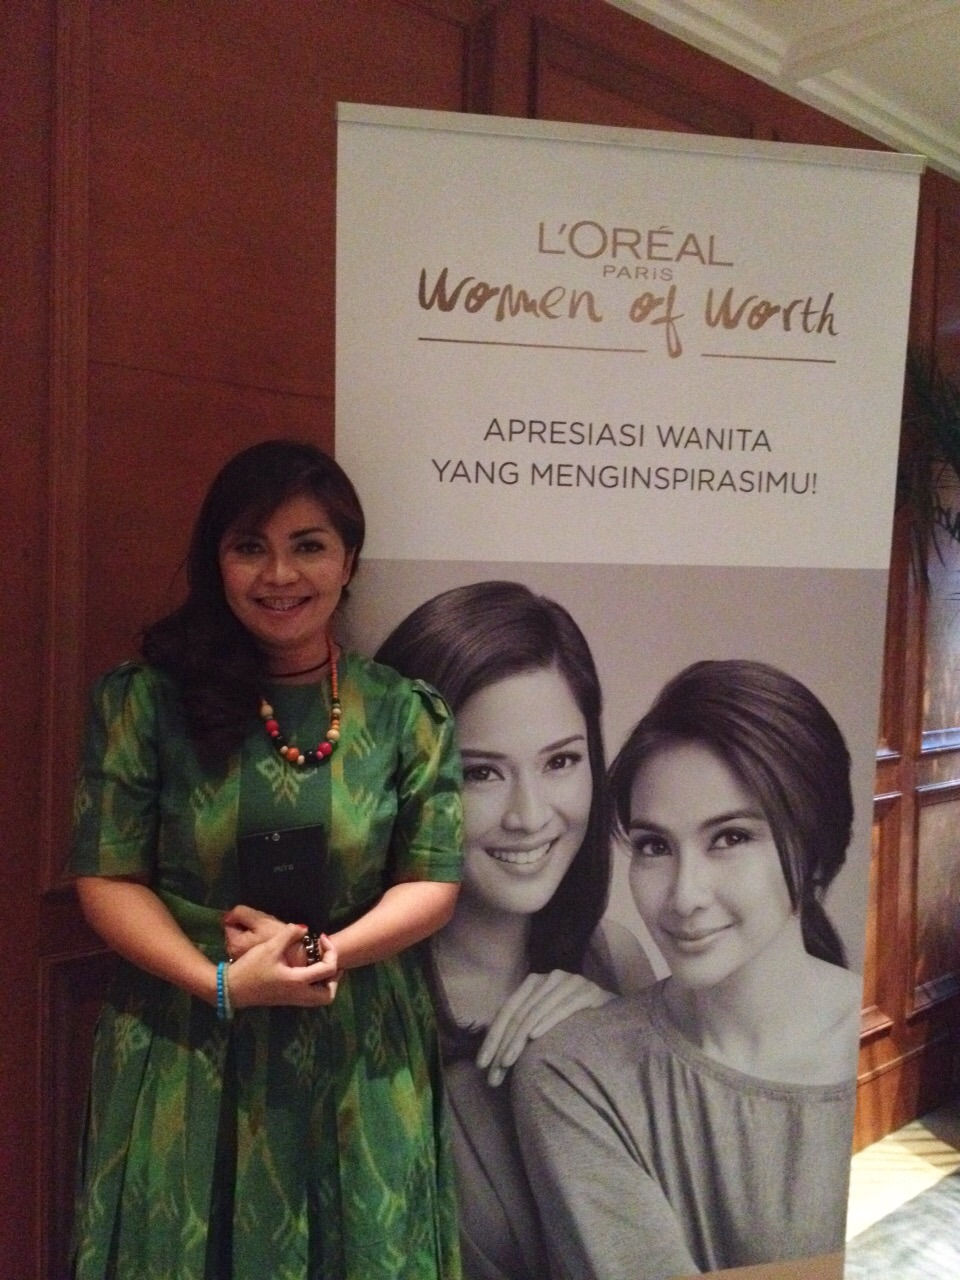 L'Oreal Women of Worth Indonesia 2014: Valencia Mieke Randa